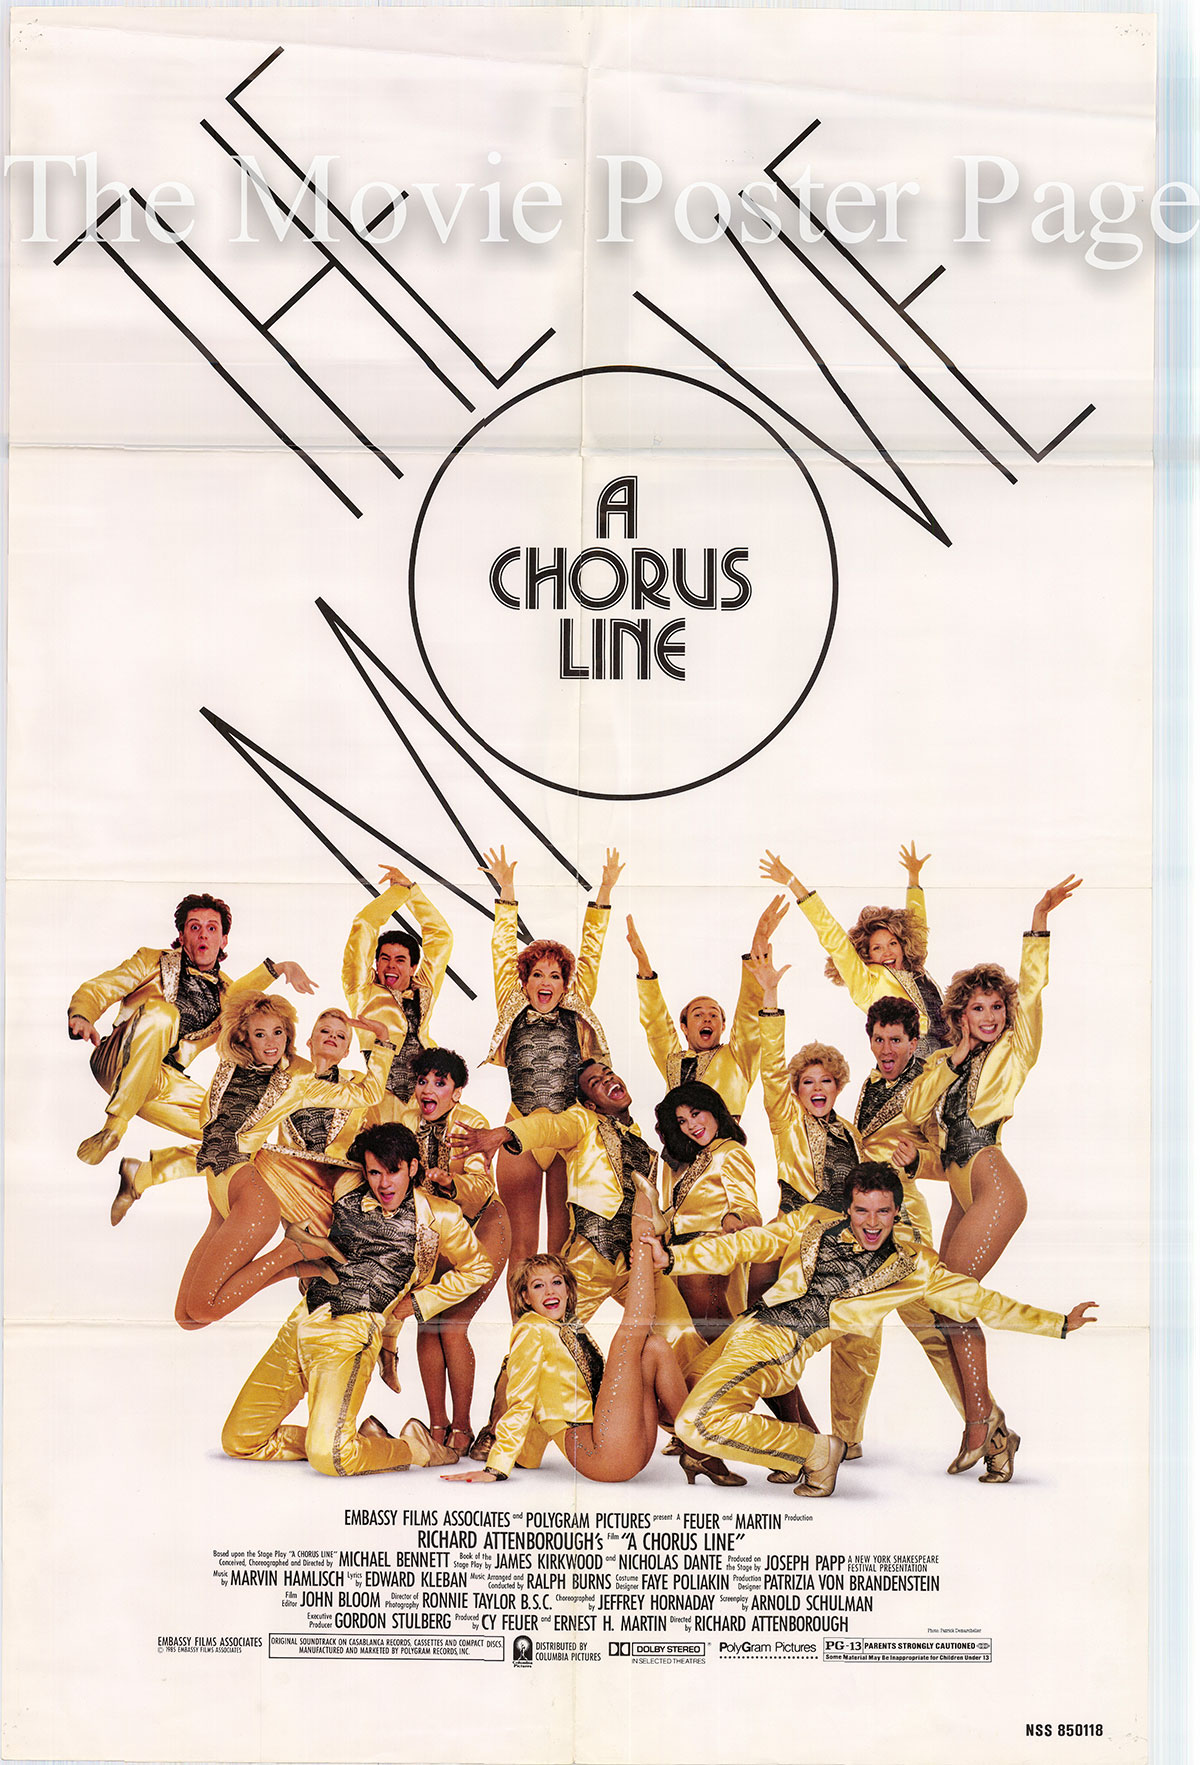 Pictured is a US one-sheet promotional poster for the 1985 Richard Attenborough film Chorus Line starring Michael Douglas as Zach.